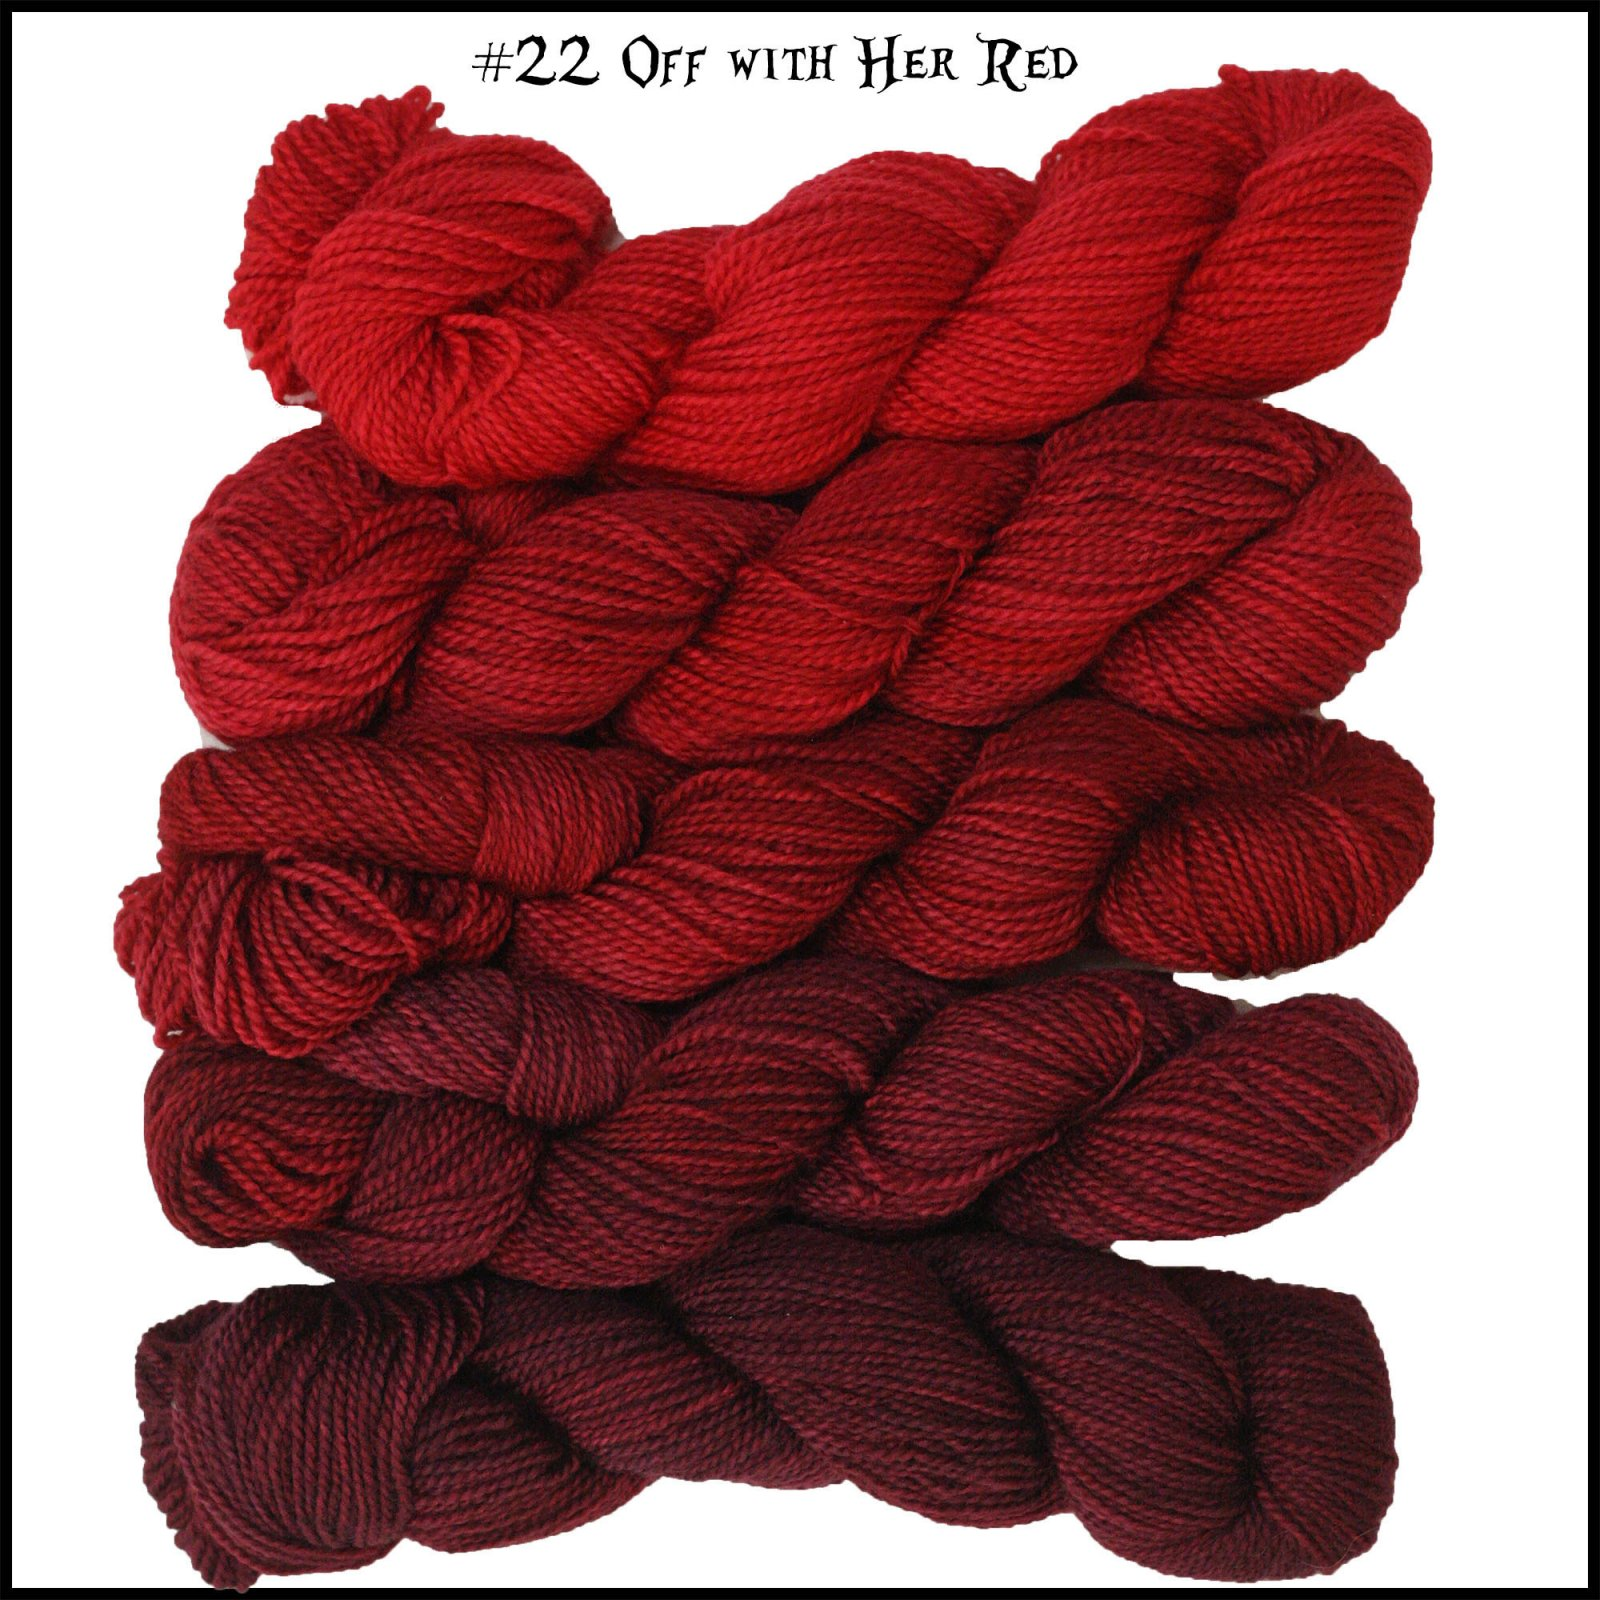 Mini Skein Pack - Queen of Hearts: Down the Rabbit Hole - #22 Off With Her Red